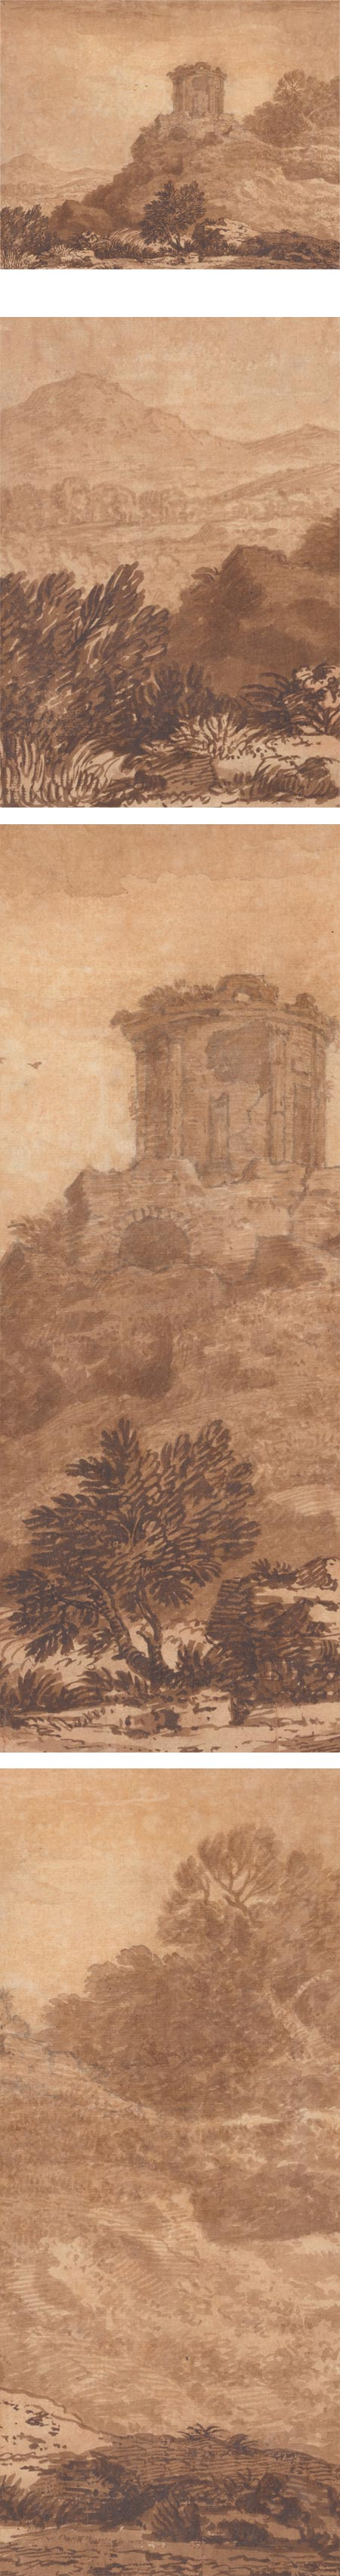 Landscape with Ruined Temple, Alexander Cozens, Brown ink and wash over graphite; roughly 12 x 16 inches (32 x 40 cm); in the collection of the Yale Center for British Art